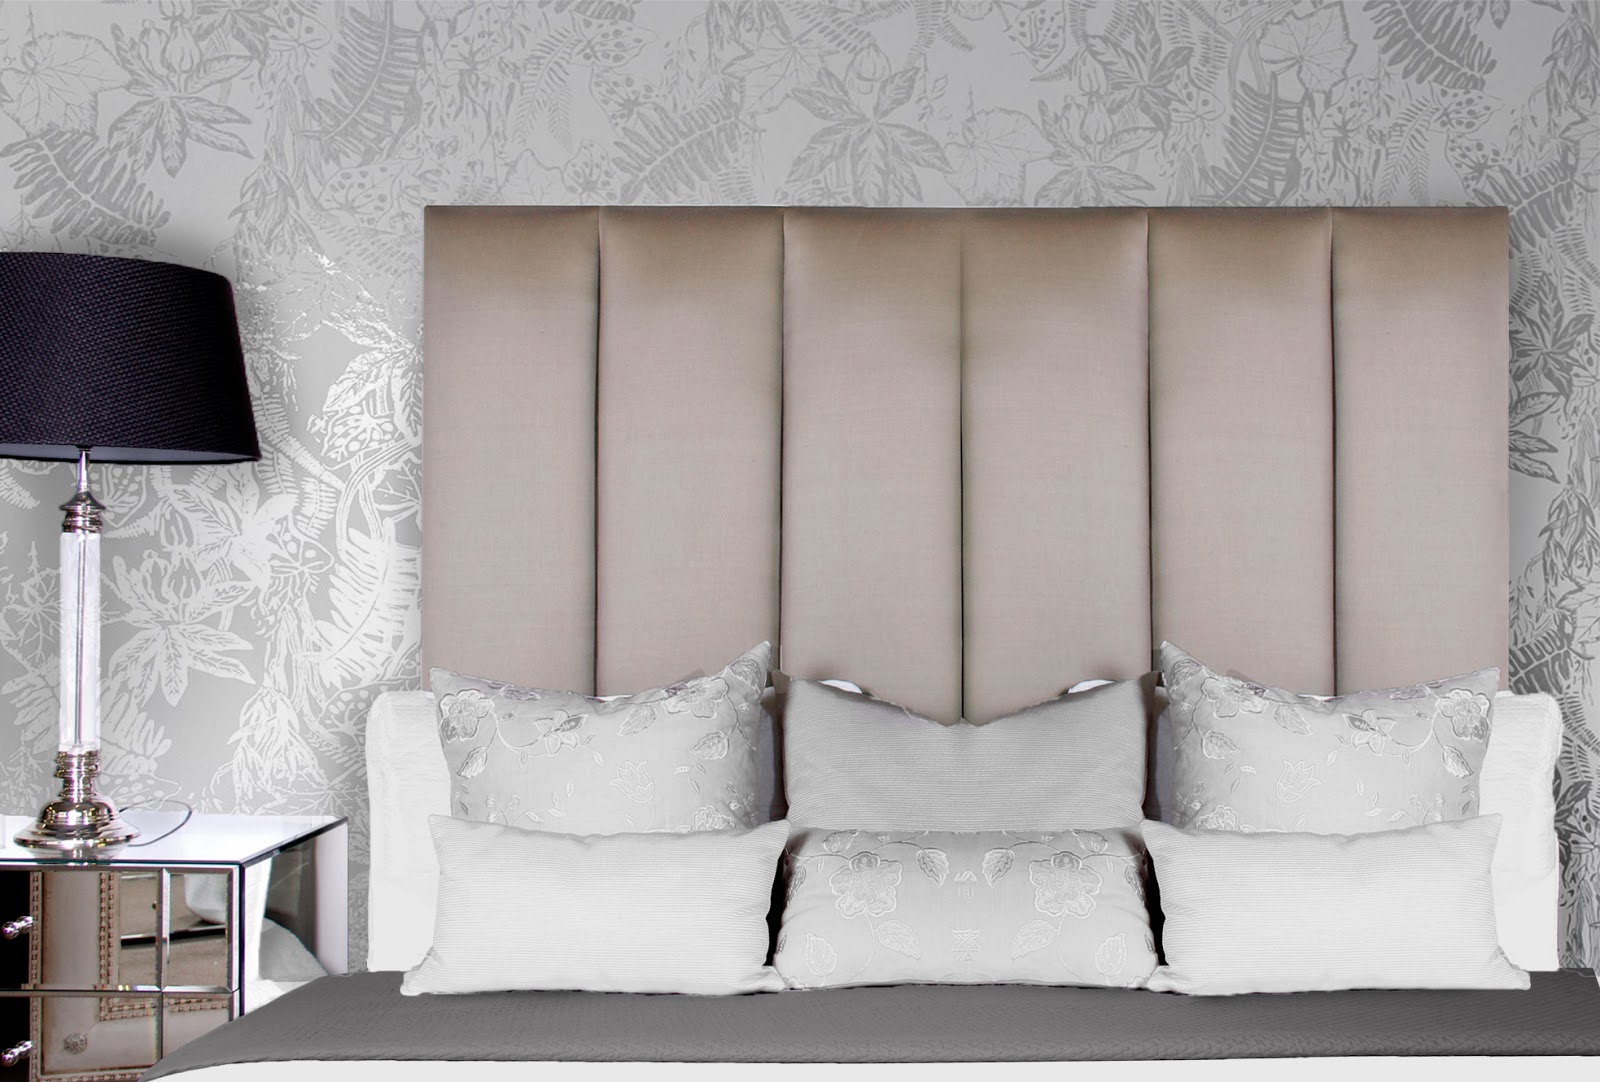 Achieve this beautiful bedroom look with a custom made bedhead like our Jasmin headboard with matching cushions and mirrored bedsides all from Bedhead Design